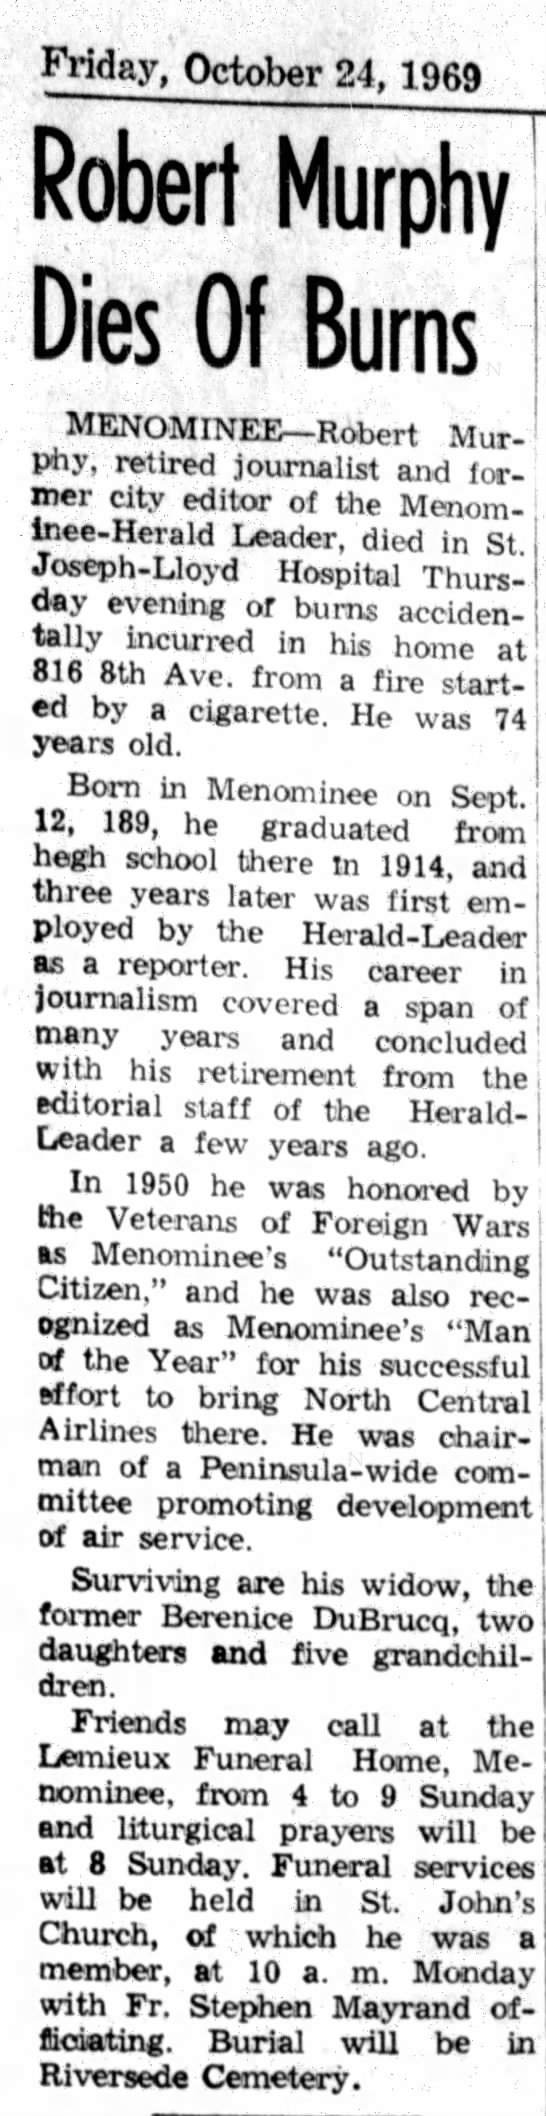 Murphy, Berniece DuBrucq Roberts obit Escanaba Daily Press Oct 1969 -